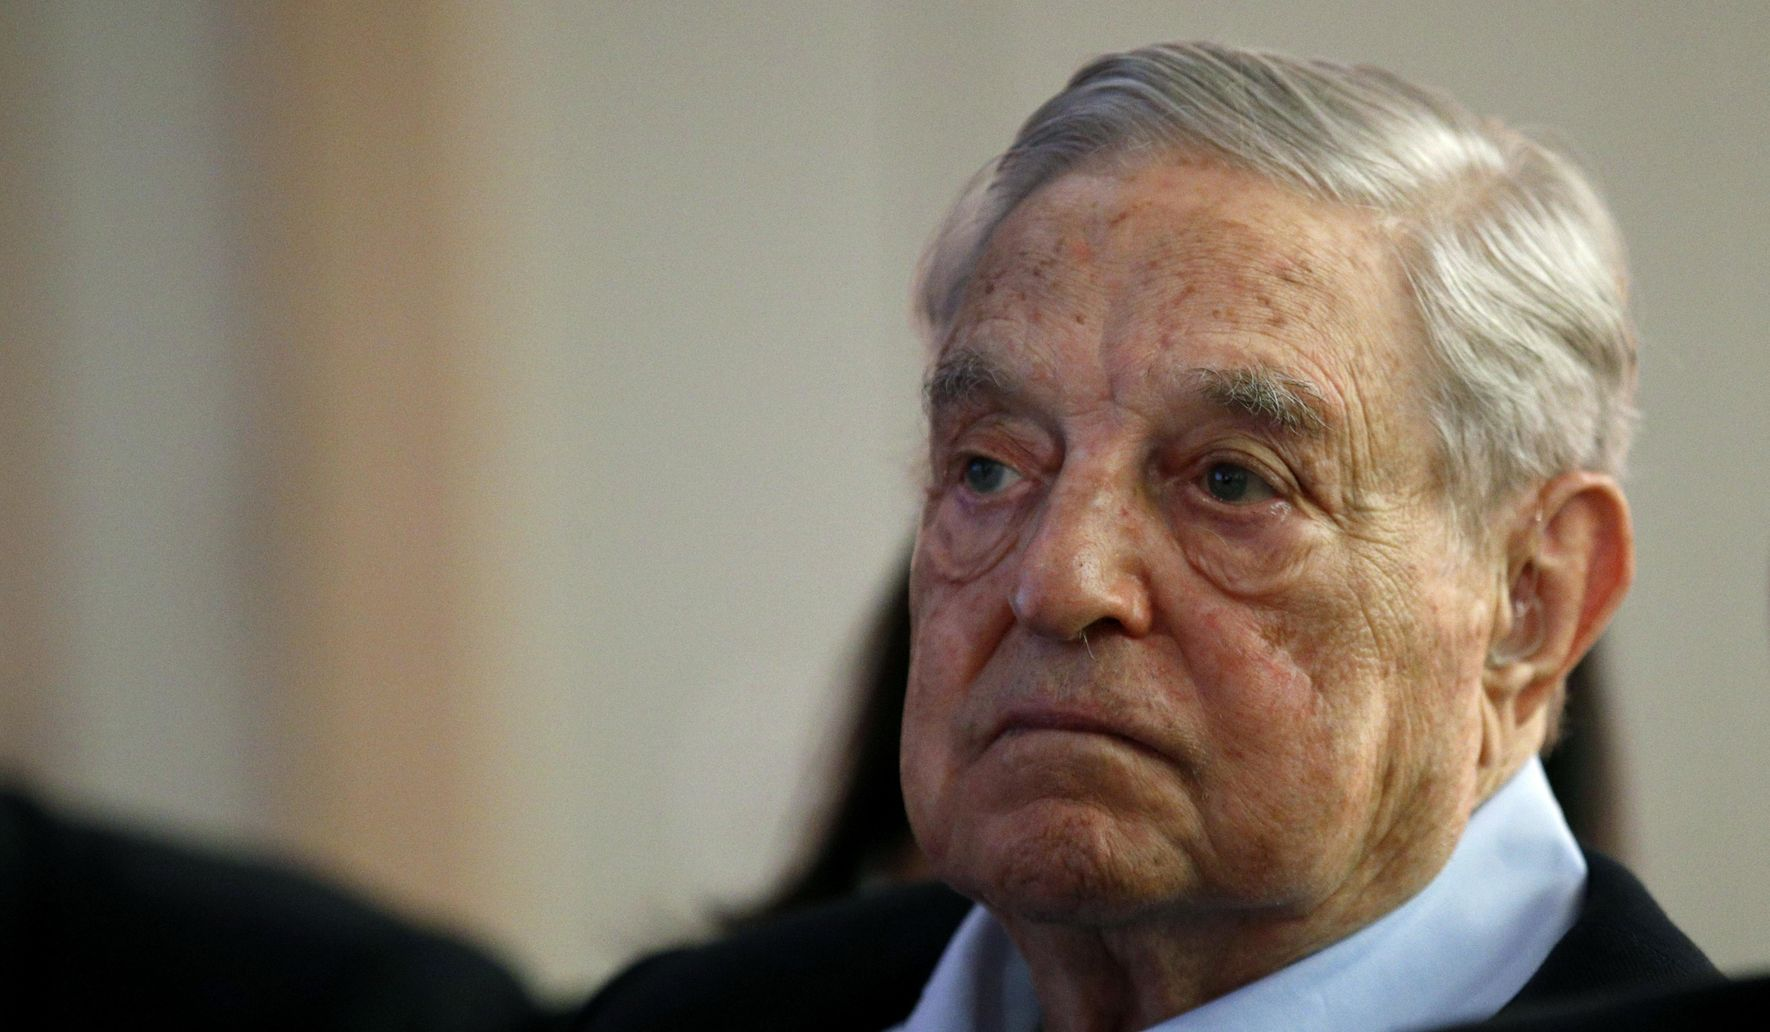 George Soros: 'Facebook will work together to reelect Trump, and Trump will protect Facebook'